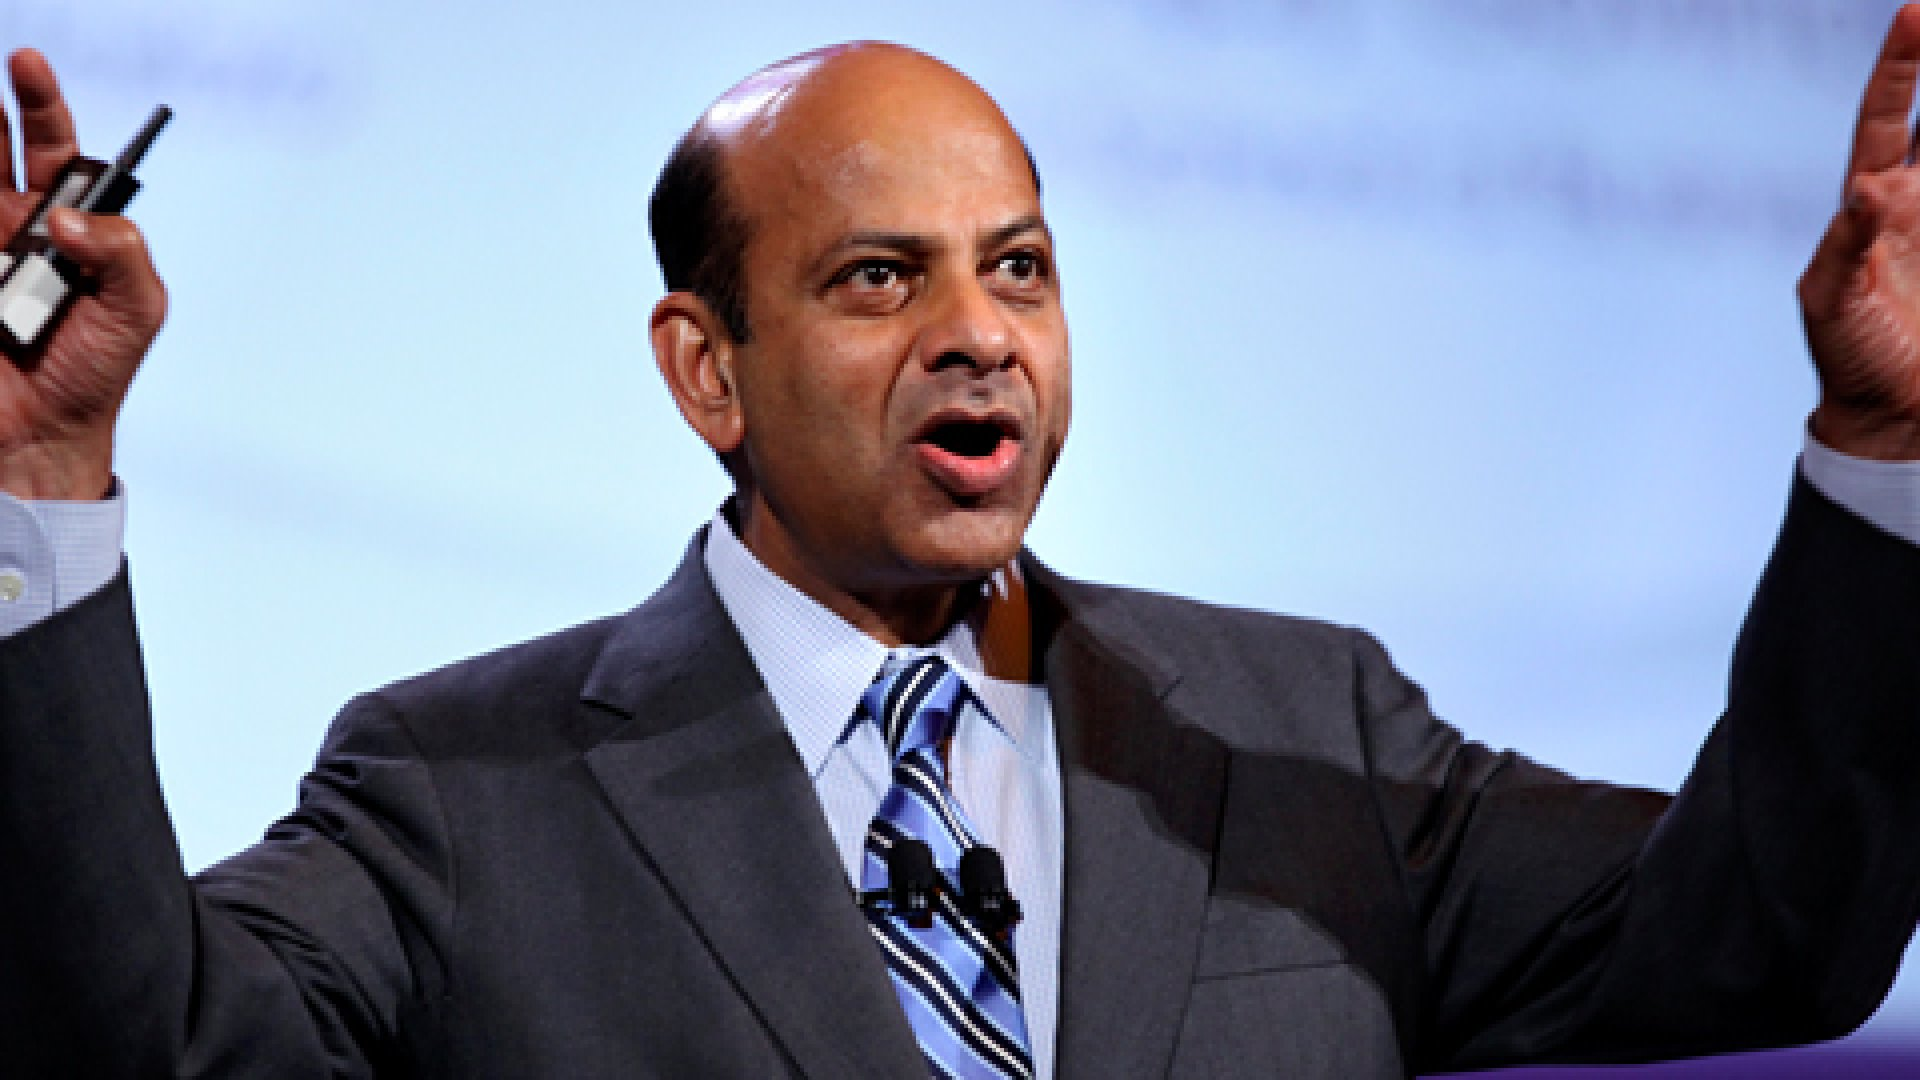 Vijay Govindarajan, professor at Dartmouth College's Tuck School of Business, speaks at the World Business Forum in New York